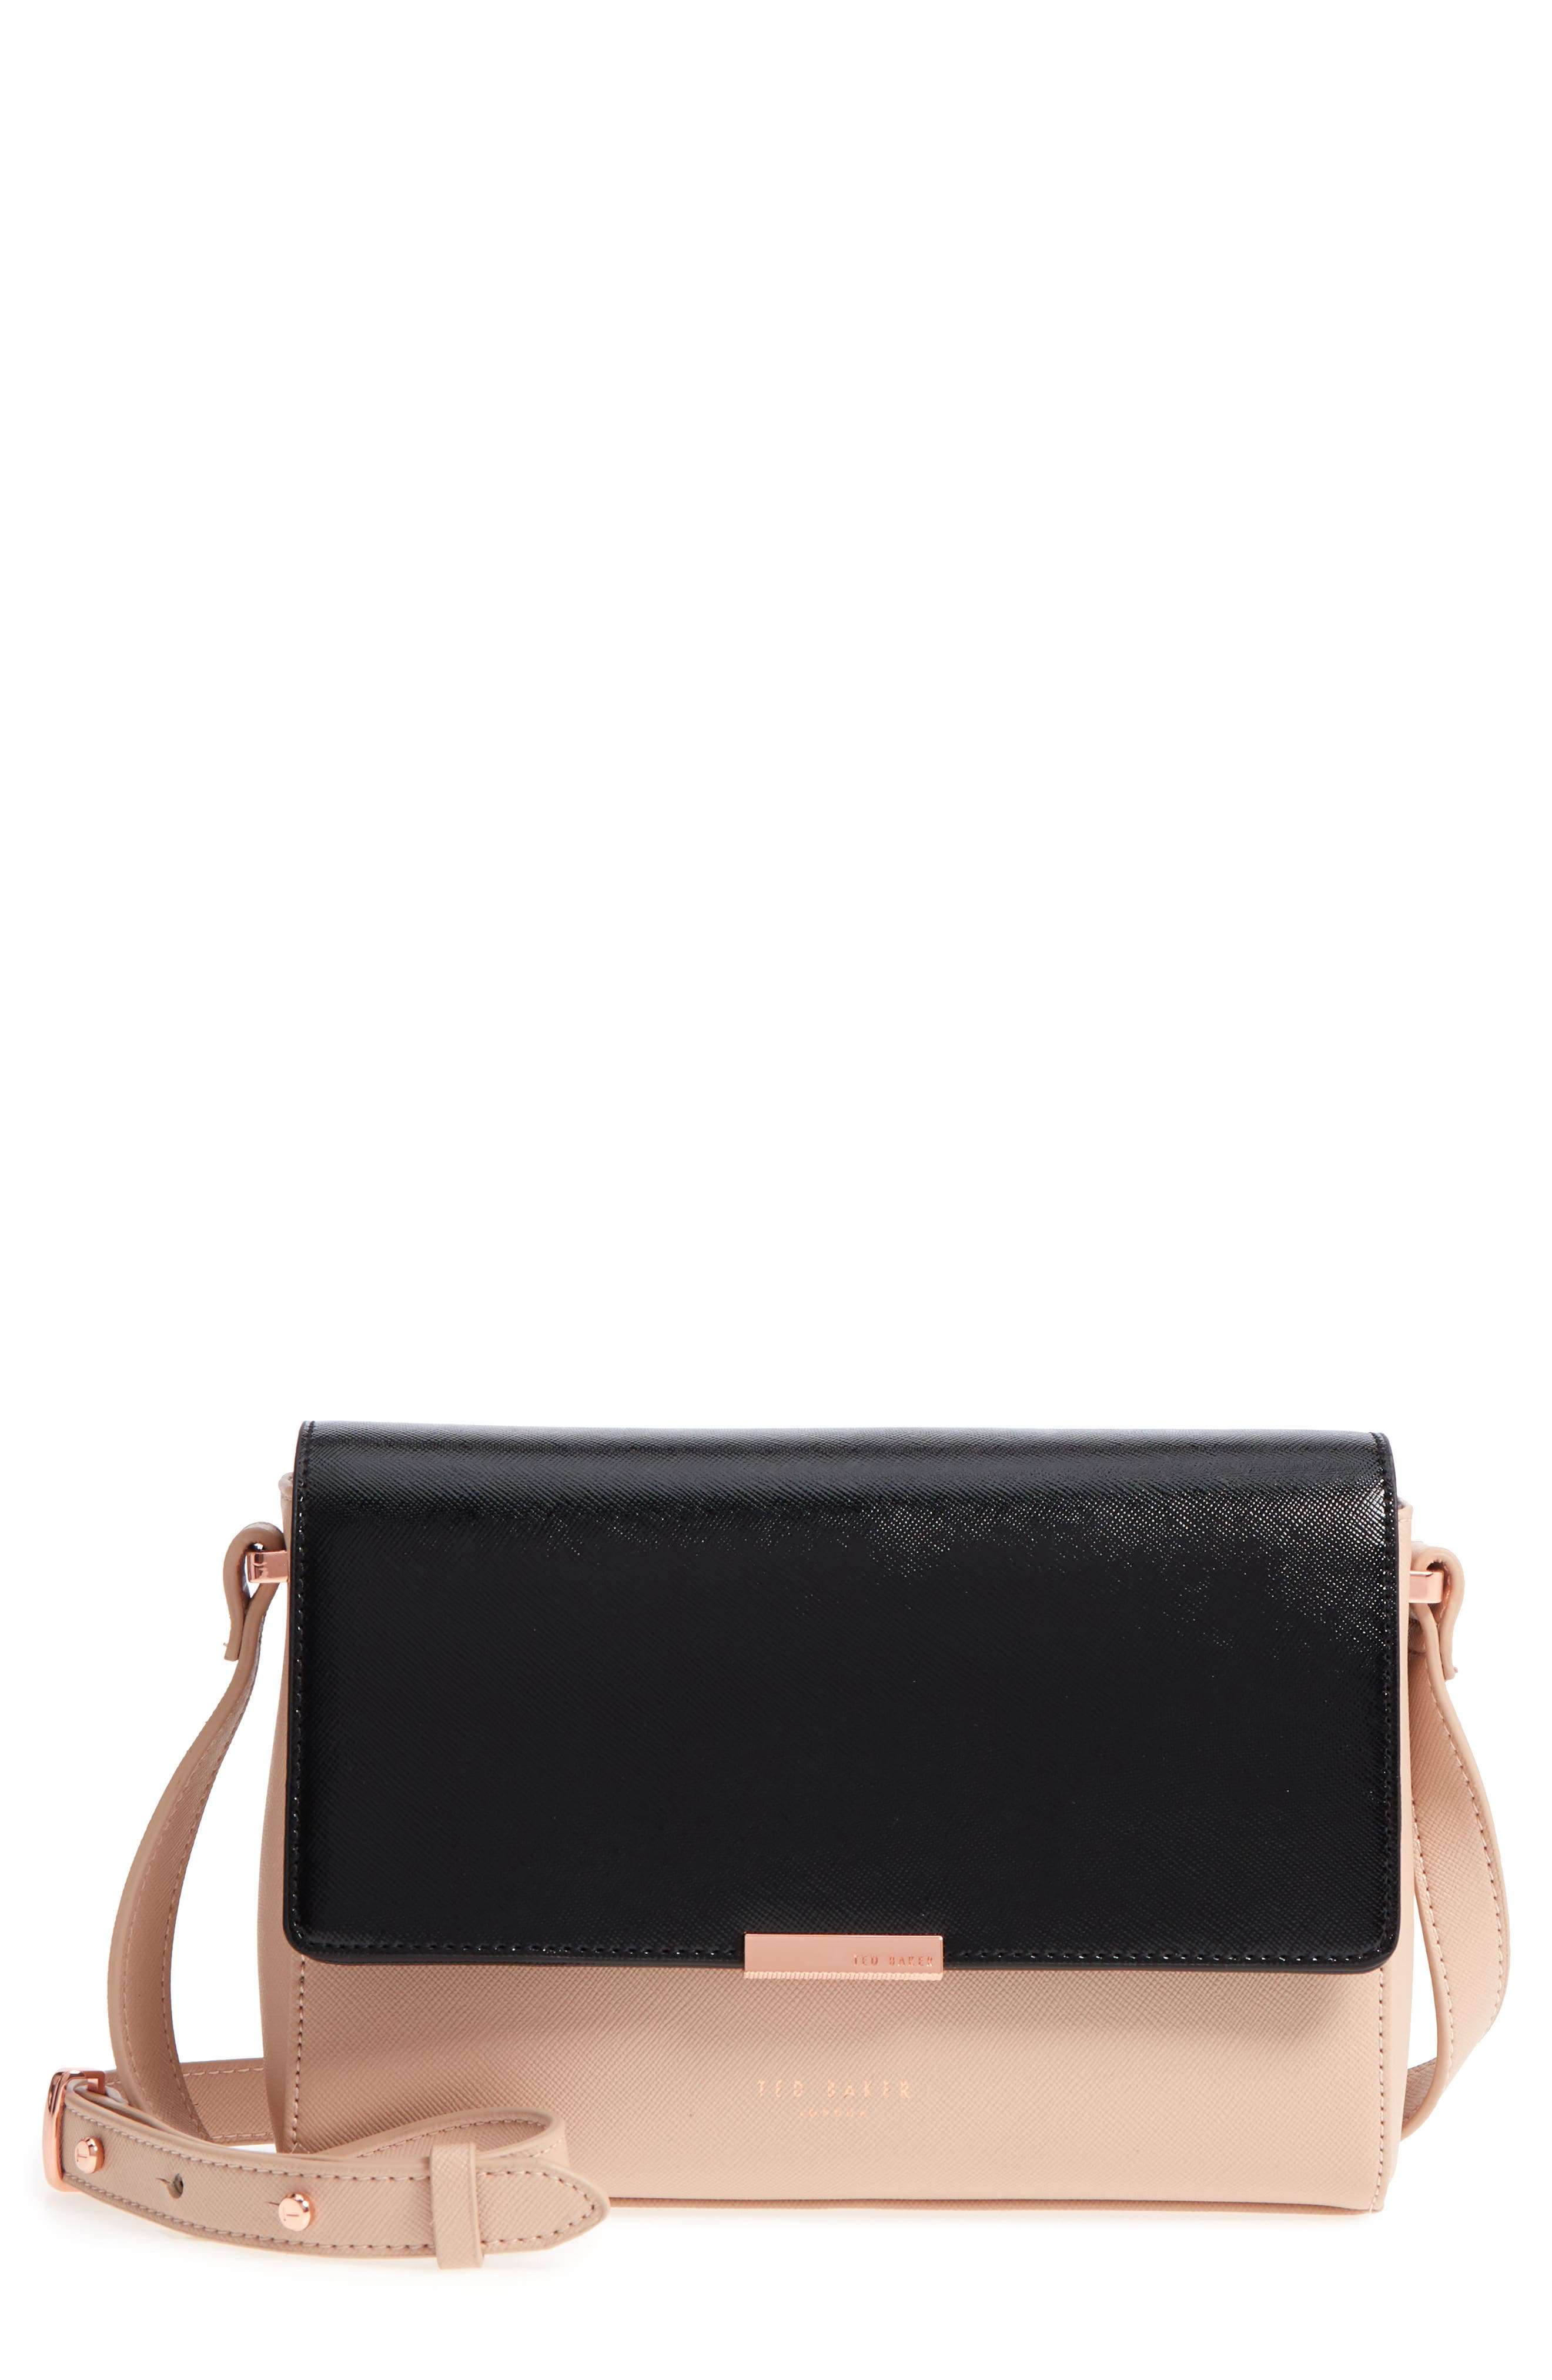 Demonda Faux Leather Crossbody Bag,                             Main thumbnail 1, color,